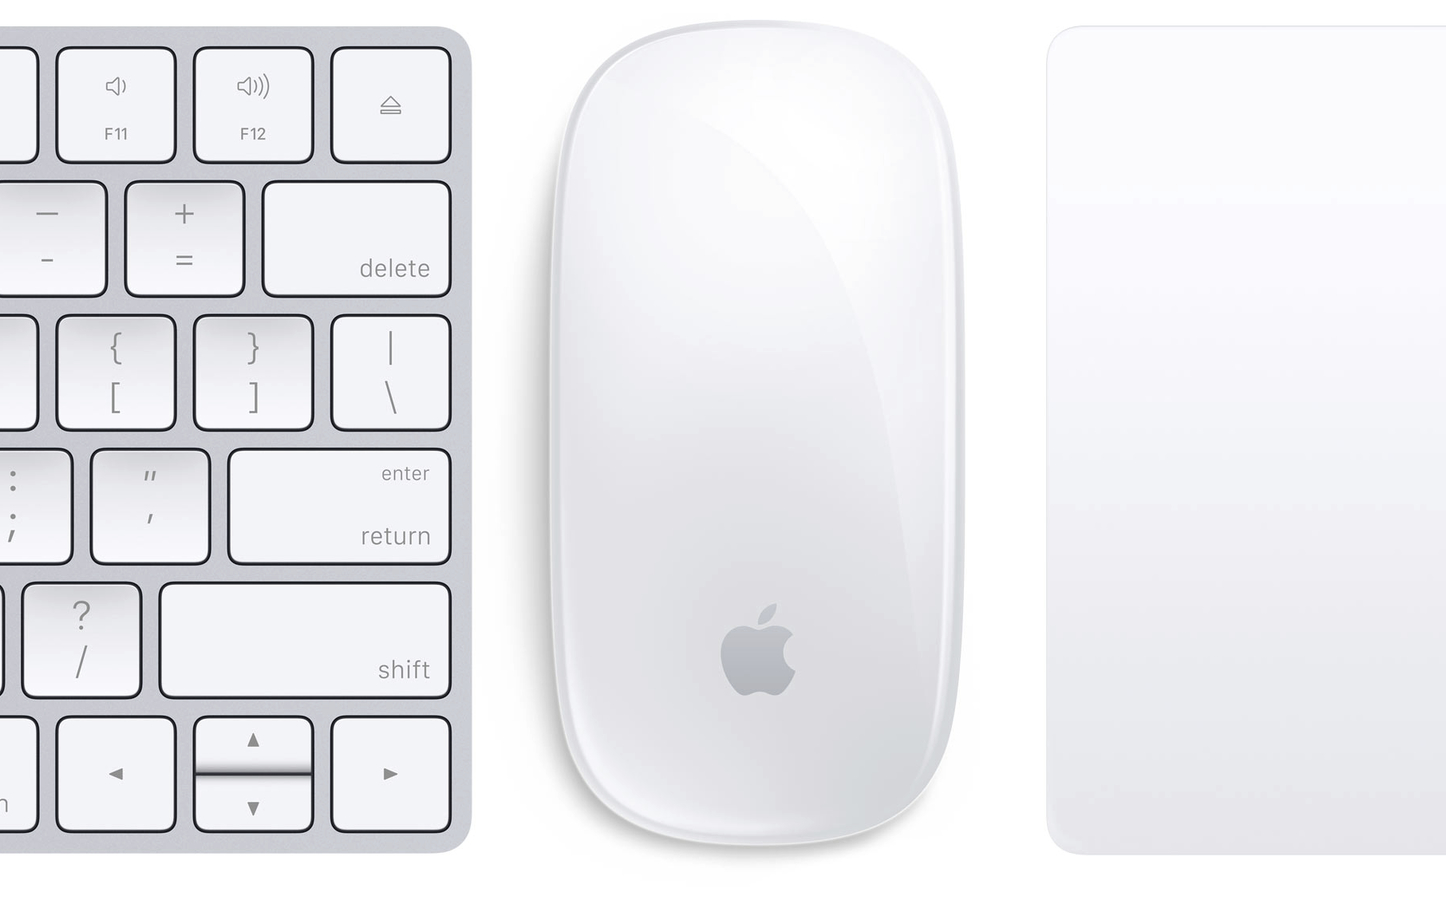 Keyboard mouse trackpad